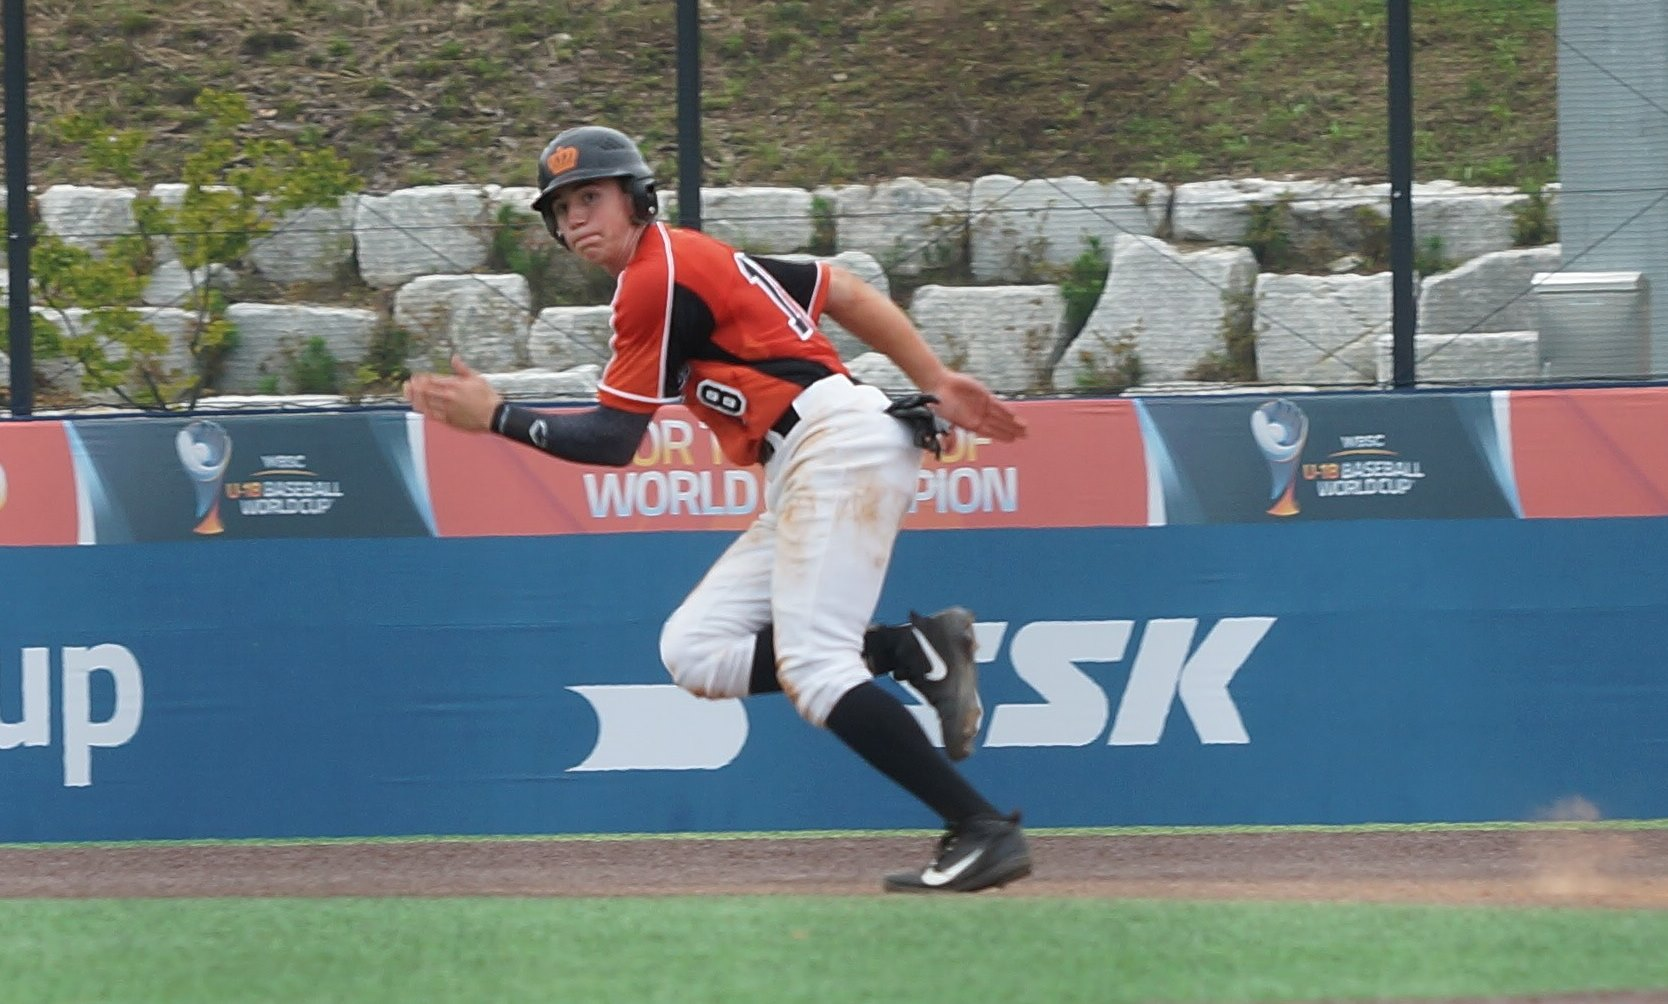 The Netherlands had another RBI by Tyriw Kemp